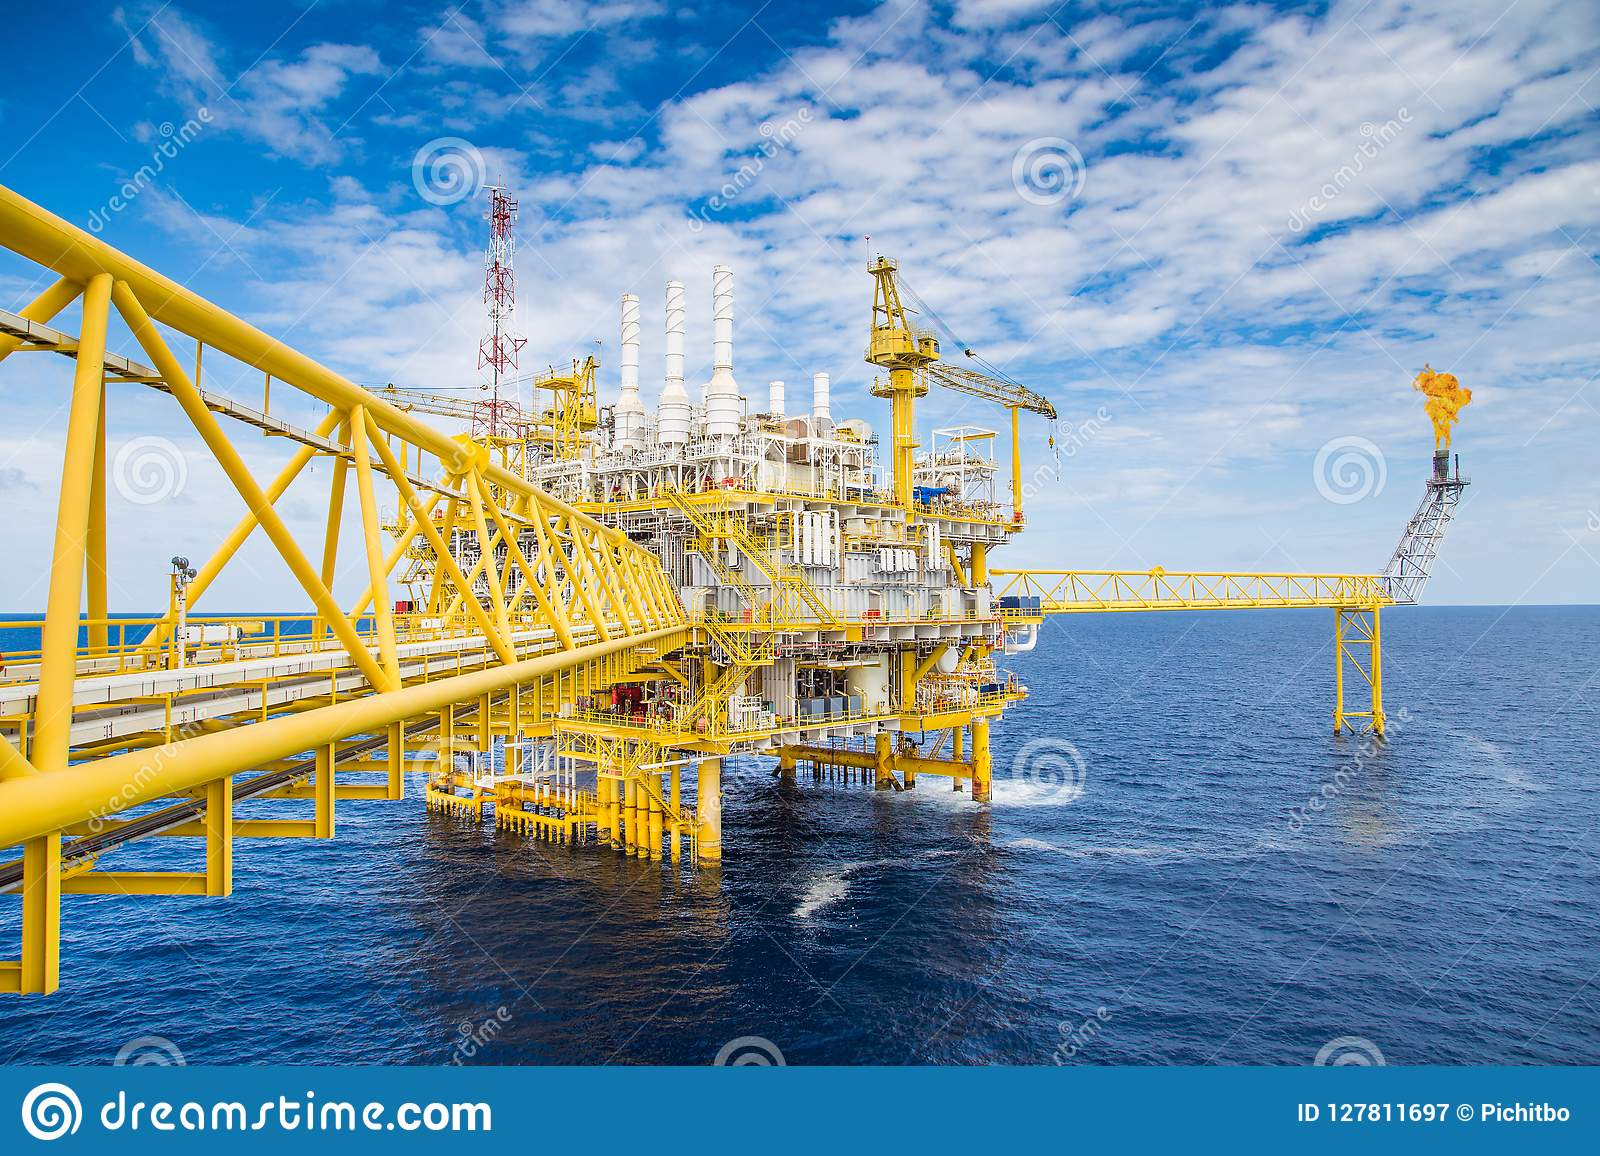 Offshore Oil And Gas Construction Rig, Power And Energy Business